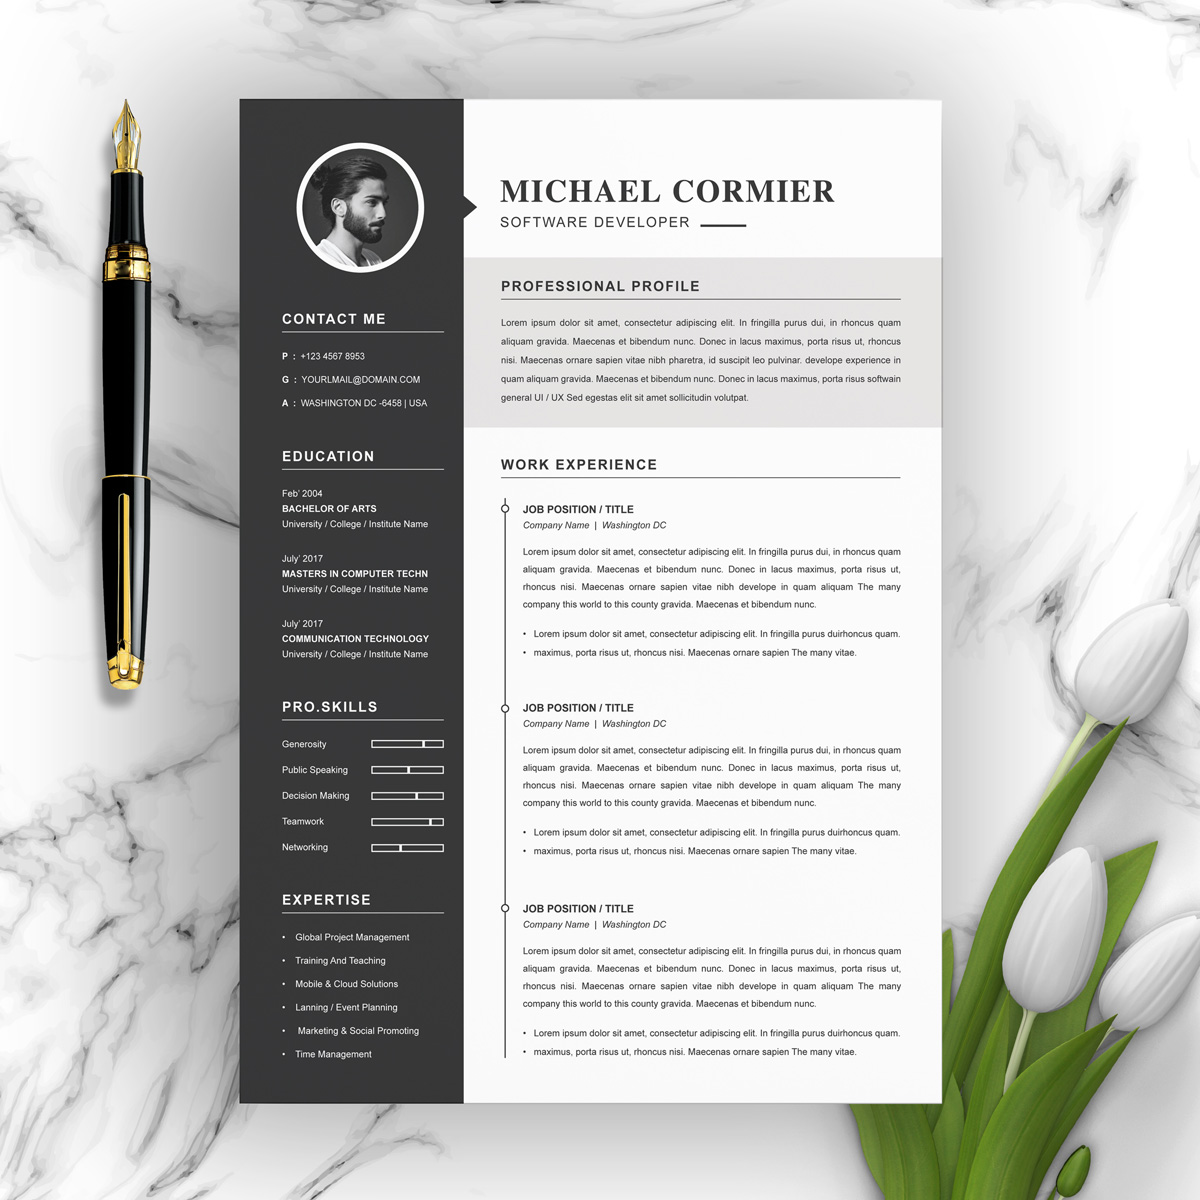 https://s3u.tmimgcdn.com/1860567-1561008937302_01_Clean-Professional-Creative-and-Modern-Resume-CV-Curriculum-Vitae-Design-Template-MS-Word-Apple-Pages-PSD-Free-Download.jpg